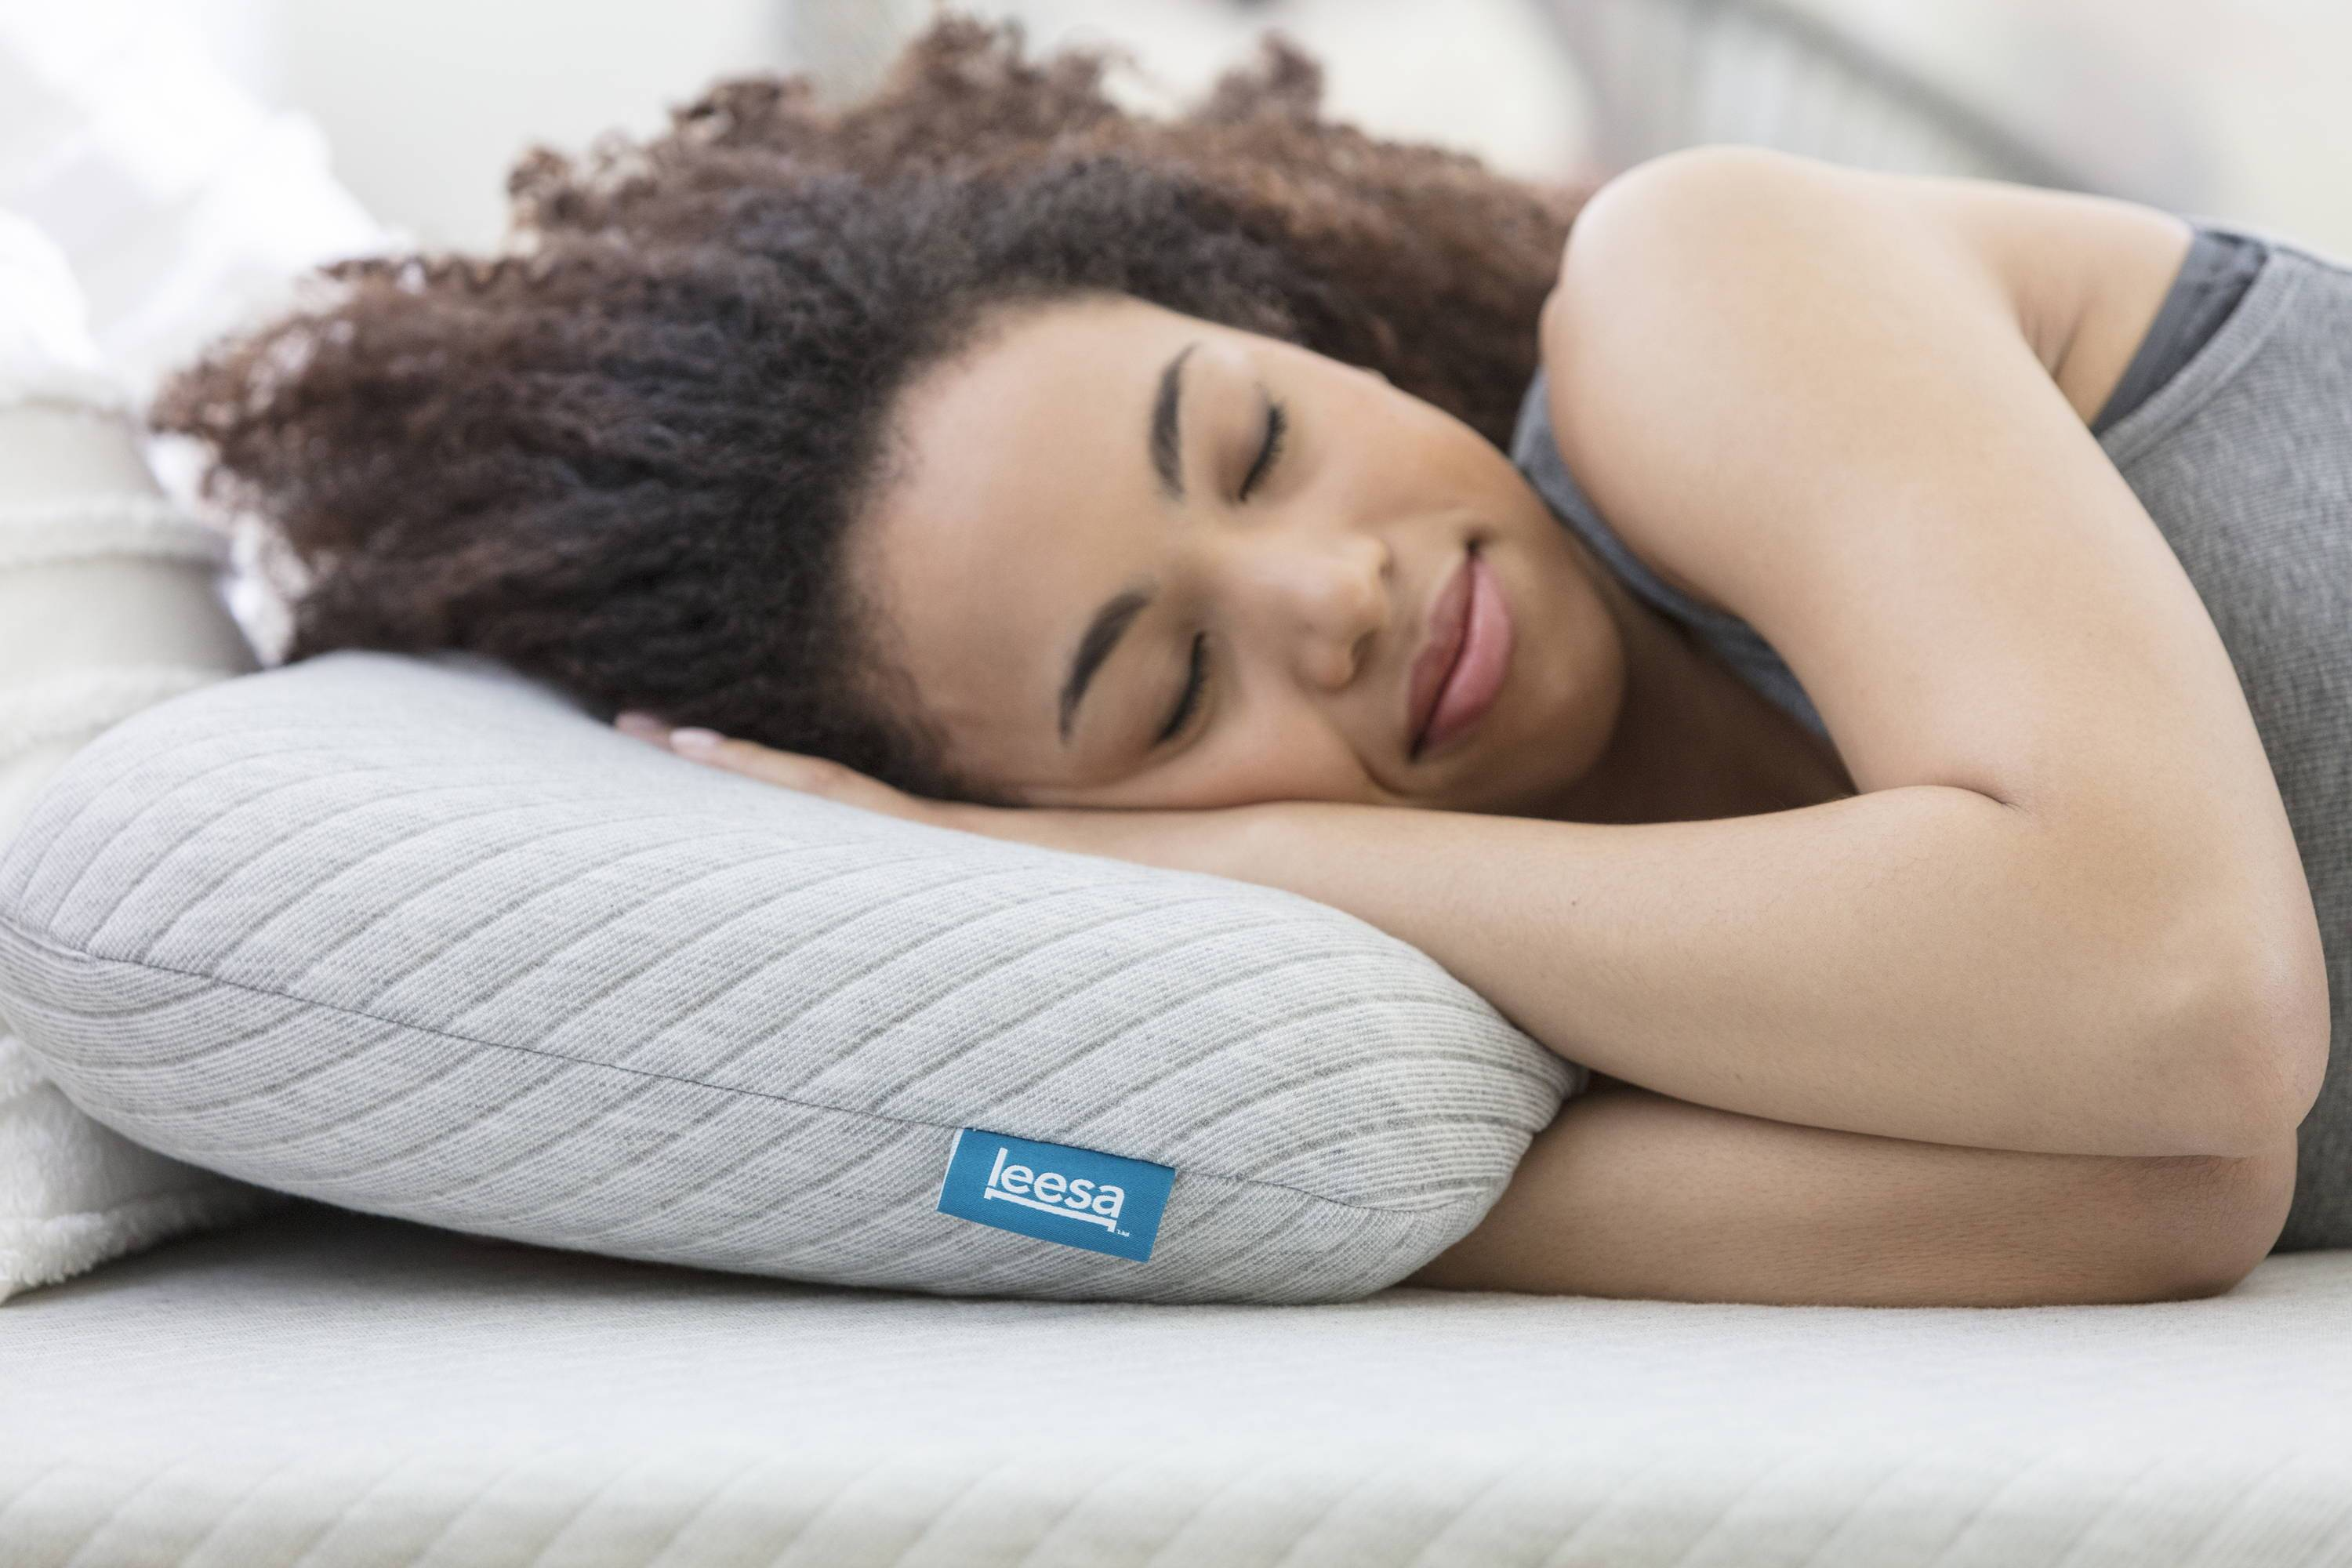 lady_sleeping_on_her_side_on_a_leesa_mattress_and_pillow_4